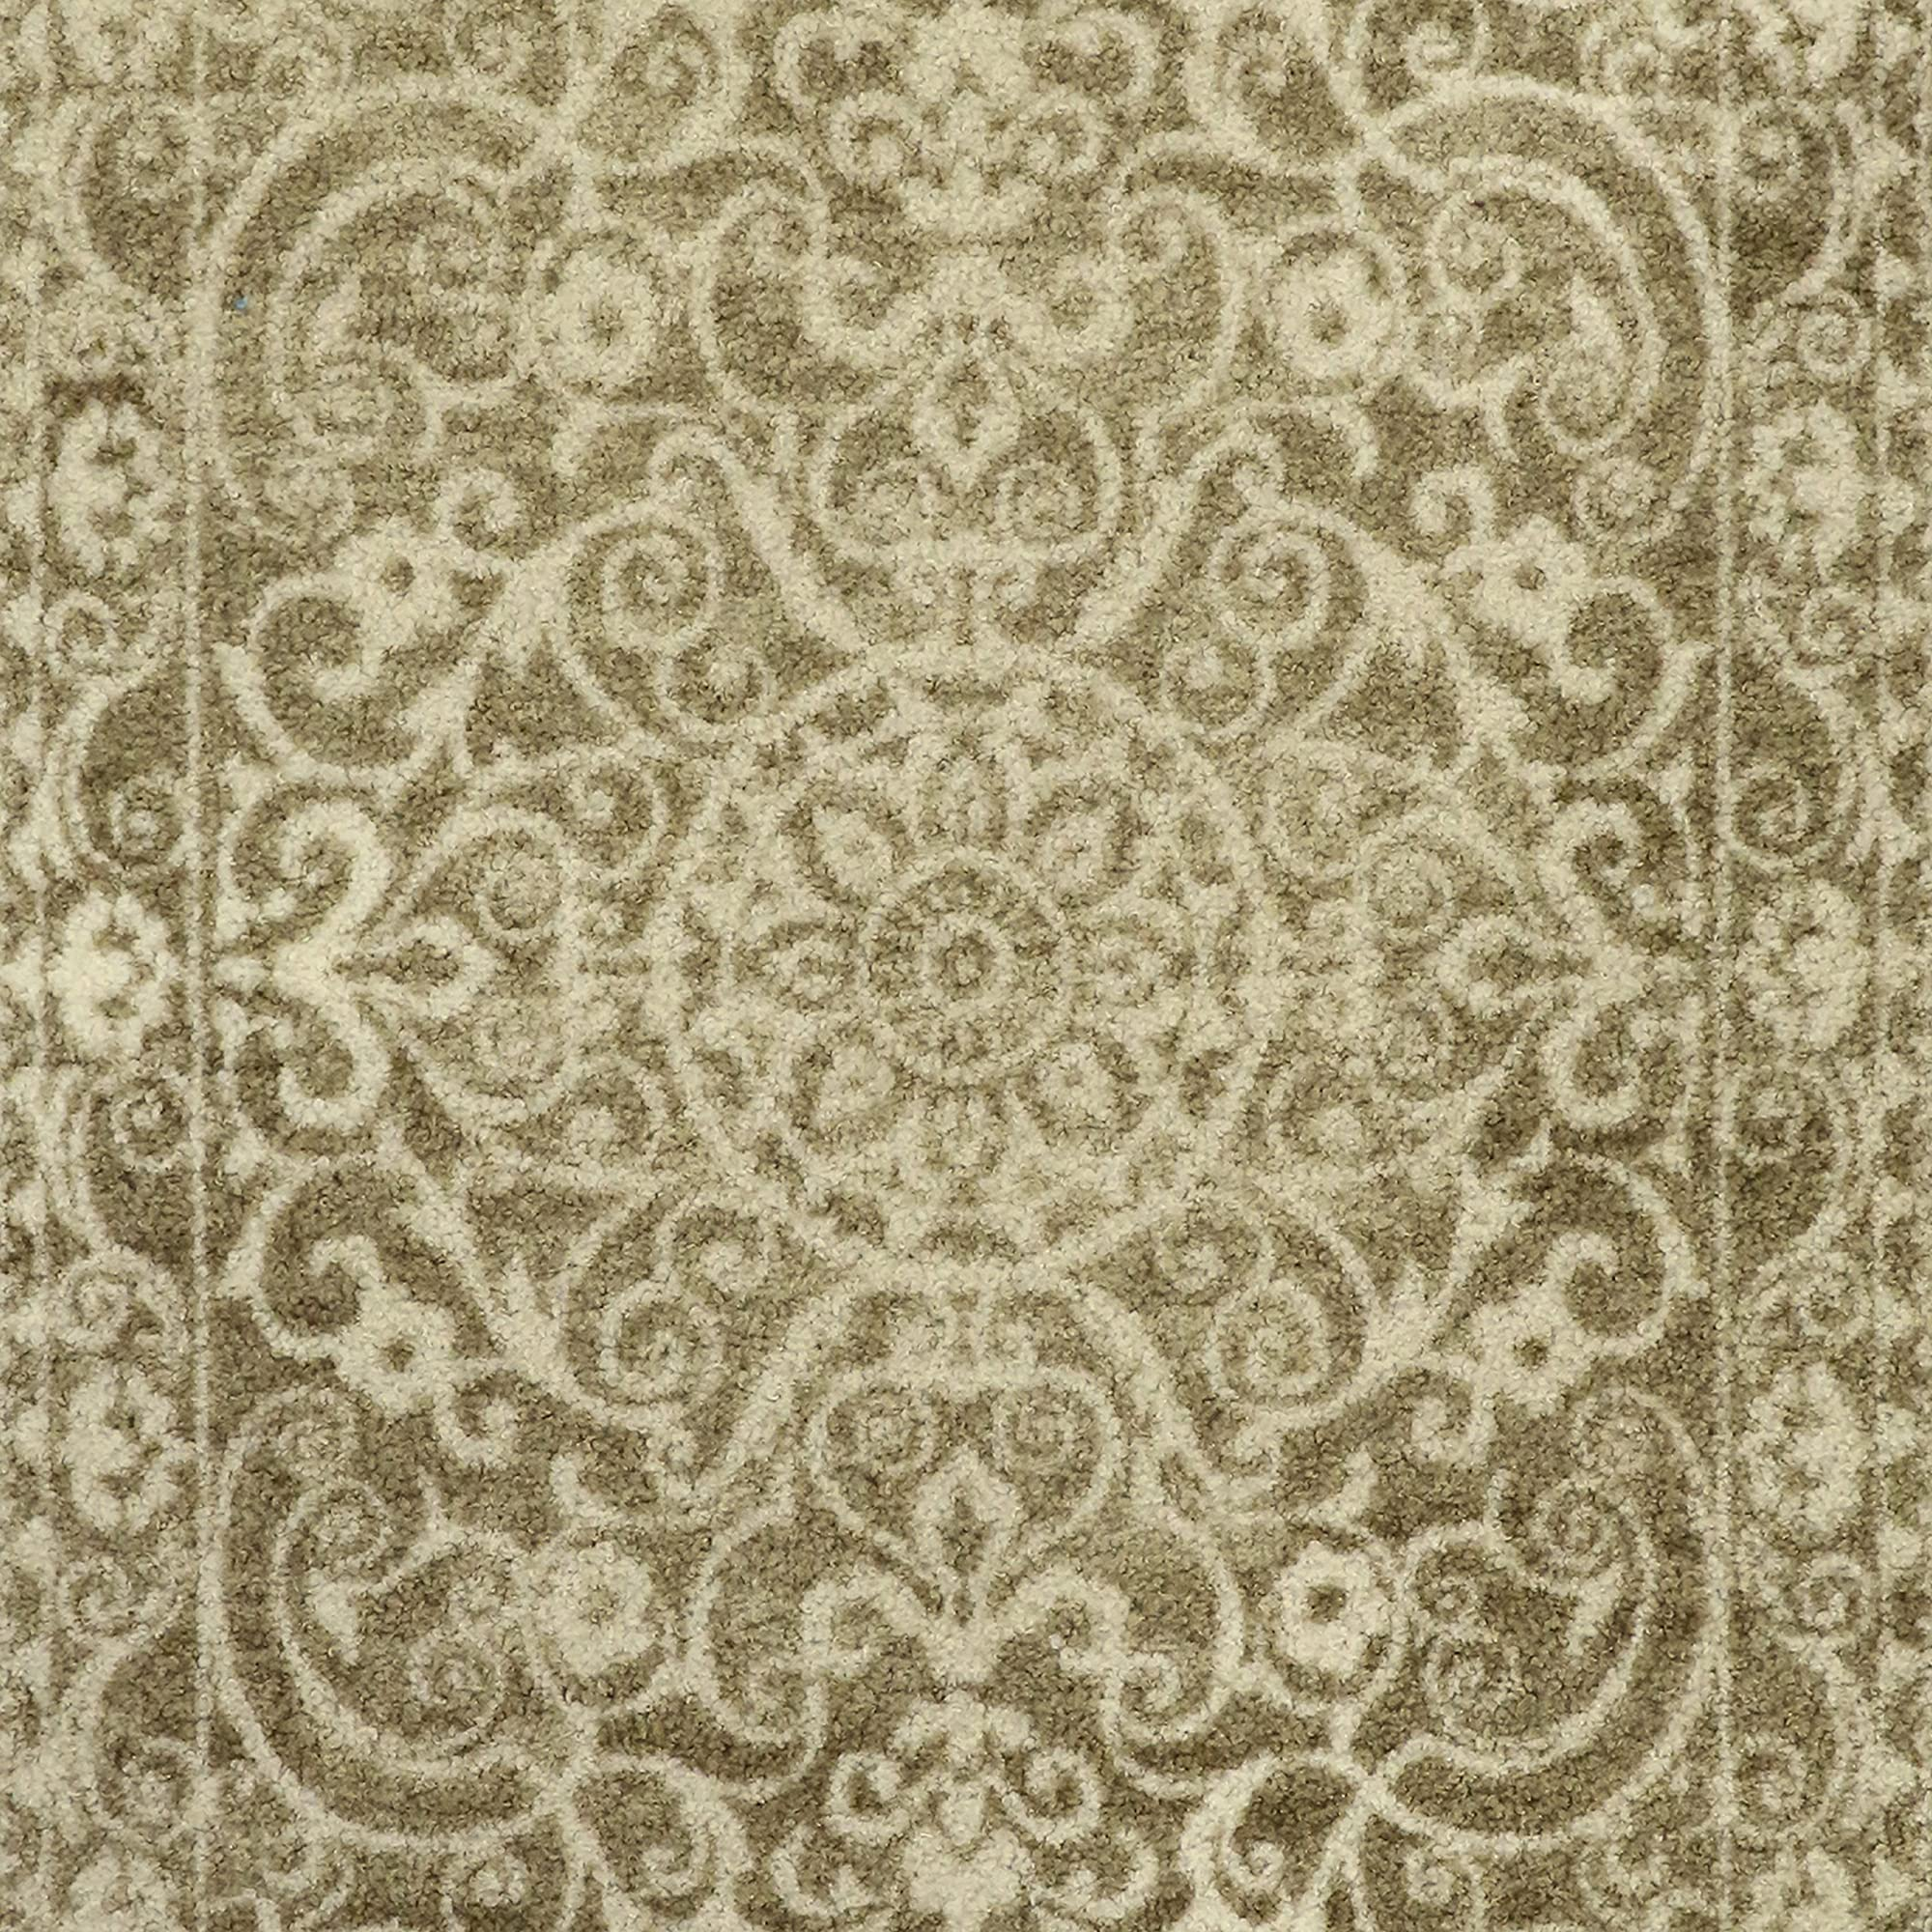 Dual-Colored Vintage Kitchen Rugs